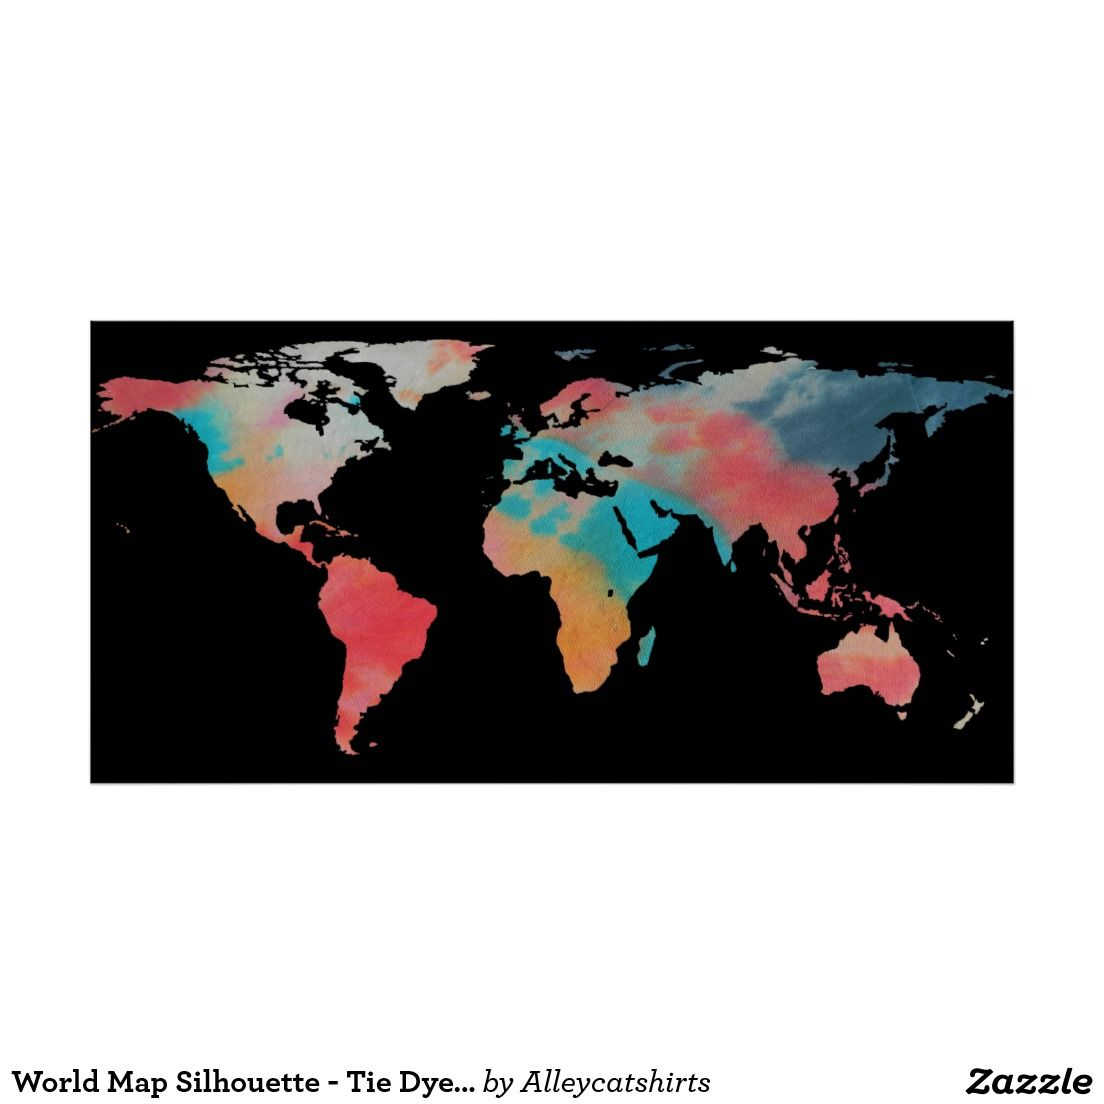 World map silhouette tie dye colors poster tie dye colors color world map silhouette tie dye colors poster gumiabroncs